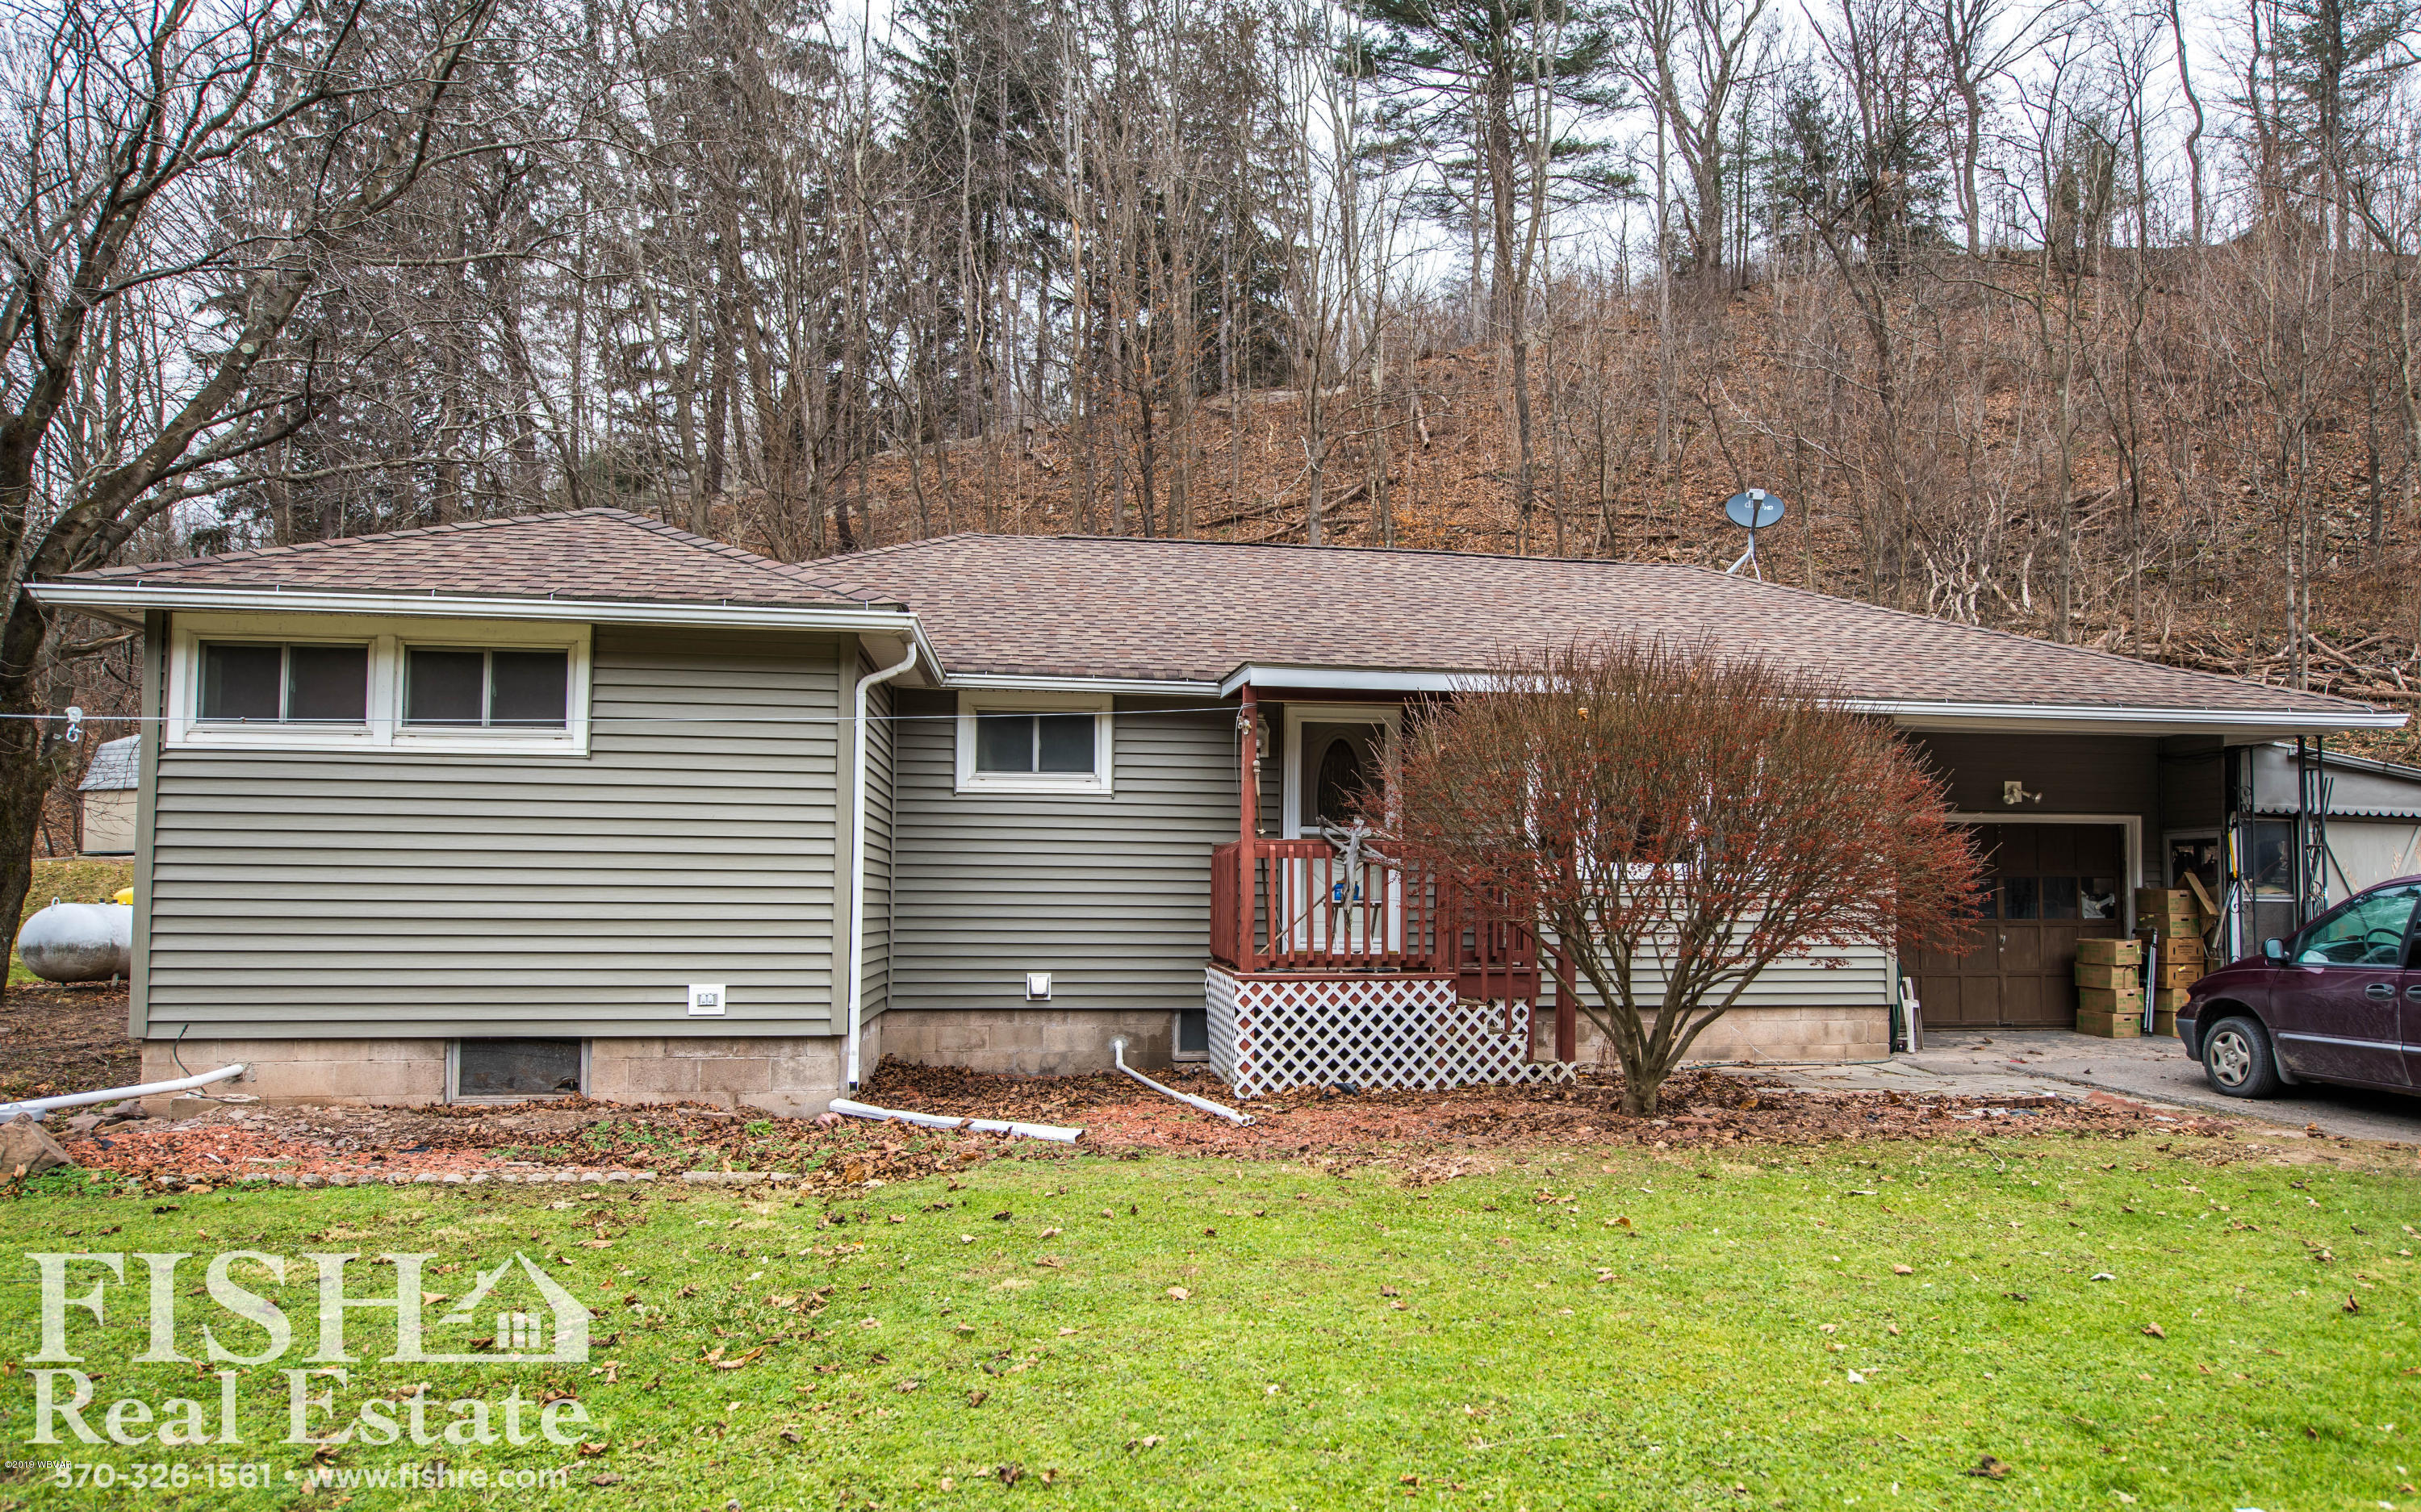 9 PEEPAW ROAD,Roaring Branch,PA 17765,2 Bedrooms Bedrooms,2 BathroomsBathrooms,Residential,PEEPAW,WB-86198